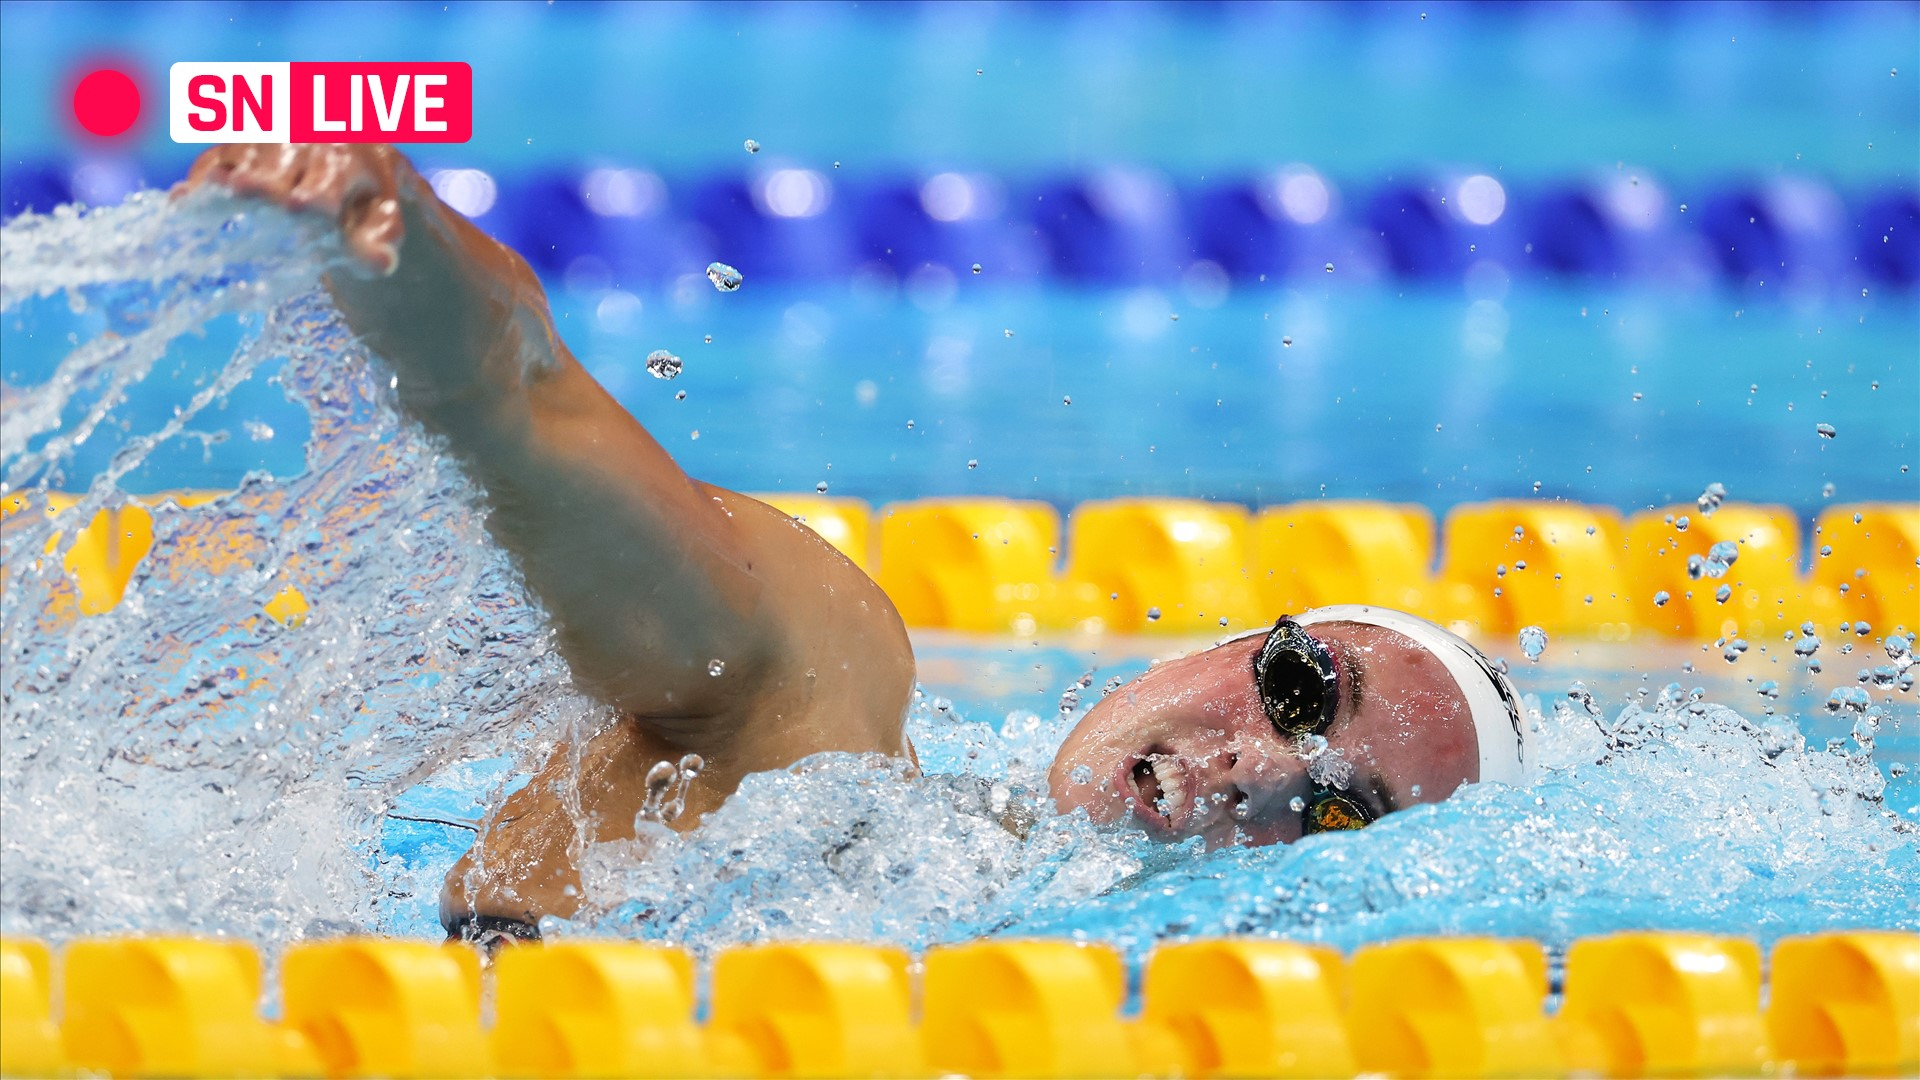 Olympics swimming live results, updates, highlights from Day 1 at 2021 Tokyo Games - sporting news